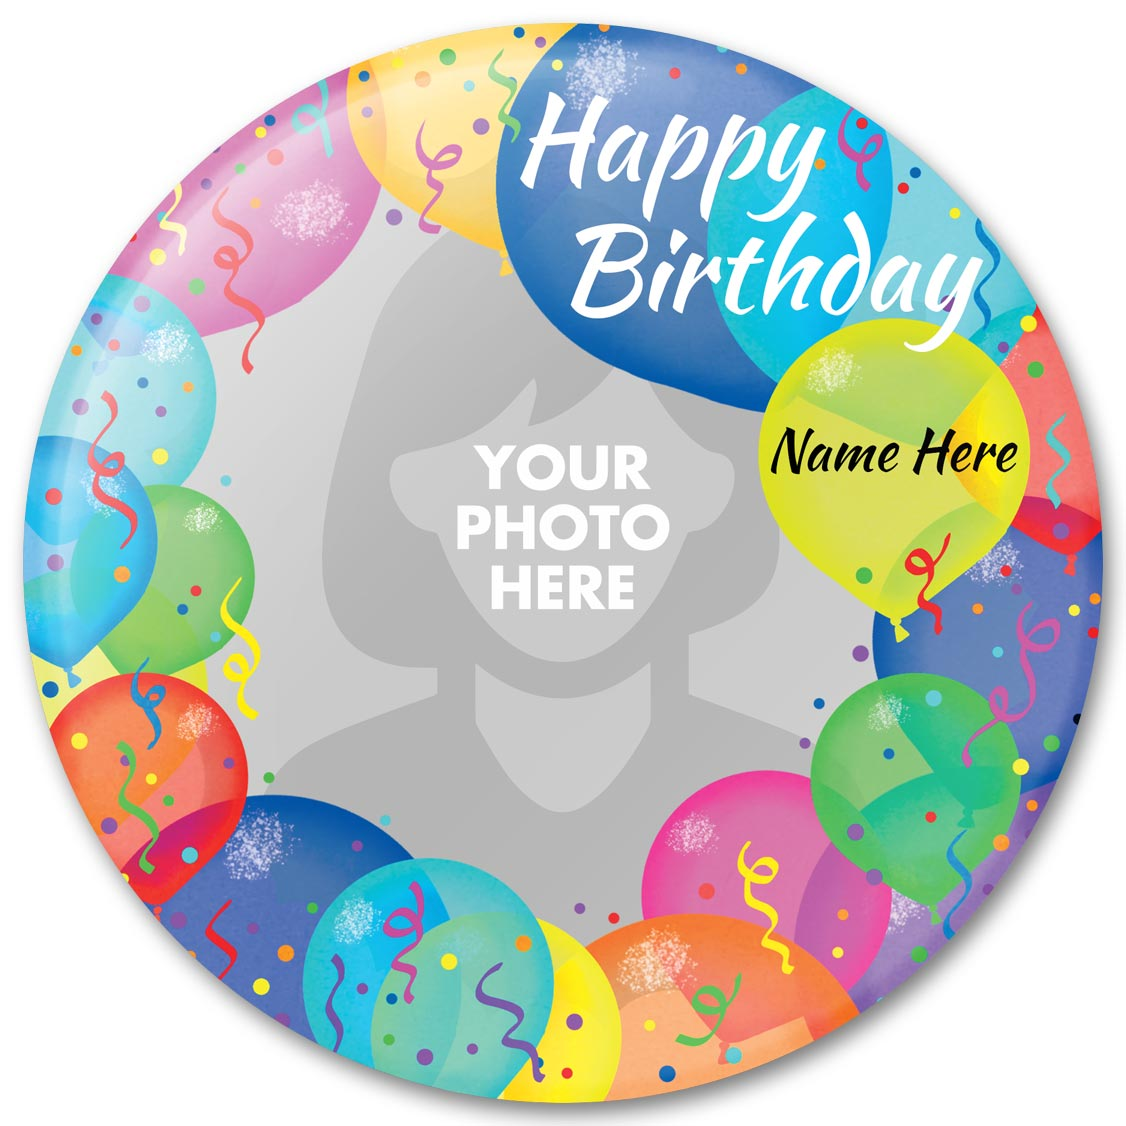 Custom Birthday Invitations, Personalized Photo Gifts - PureButtons